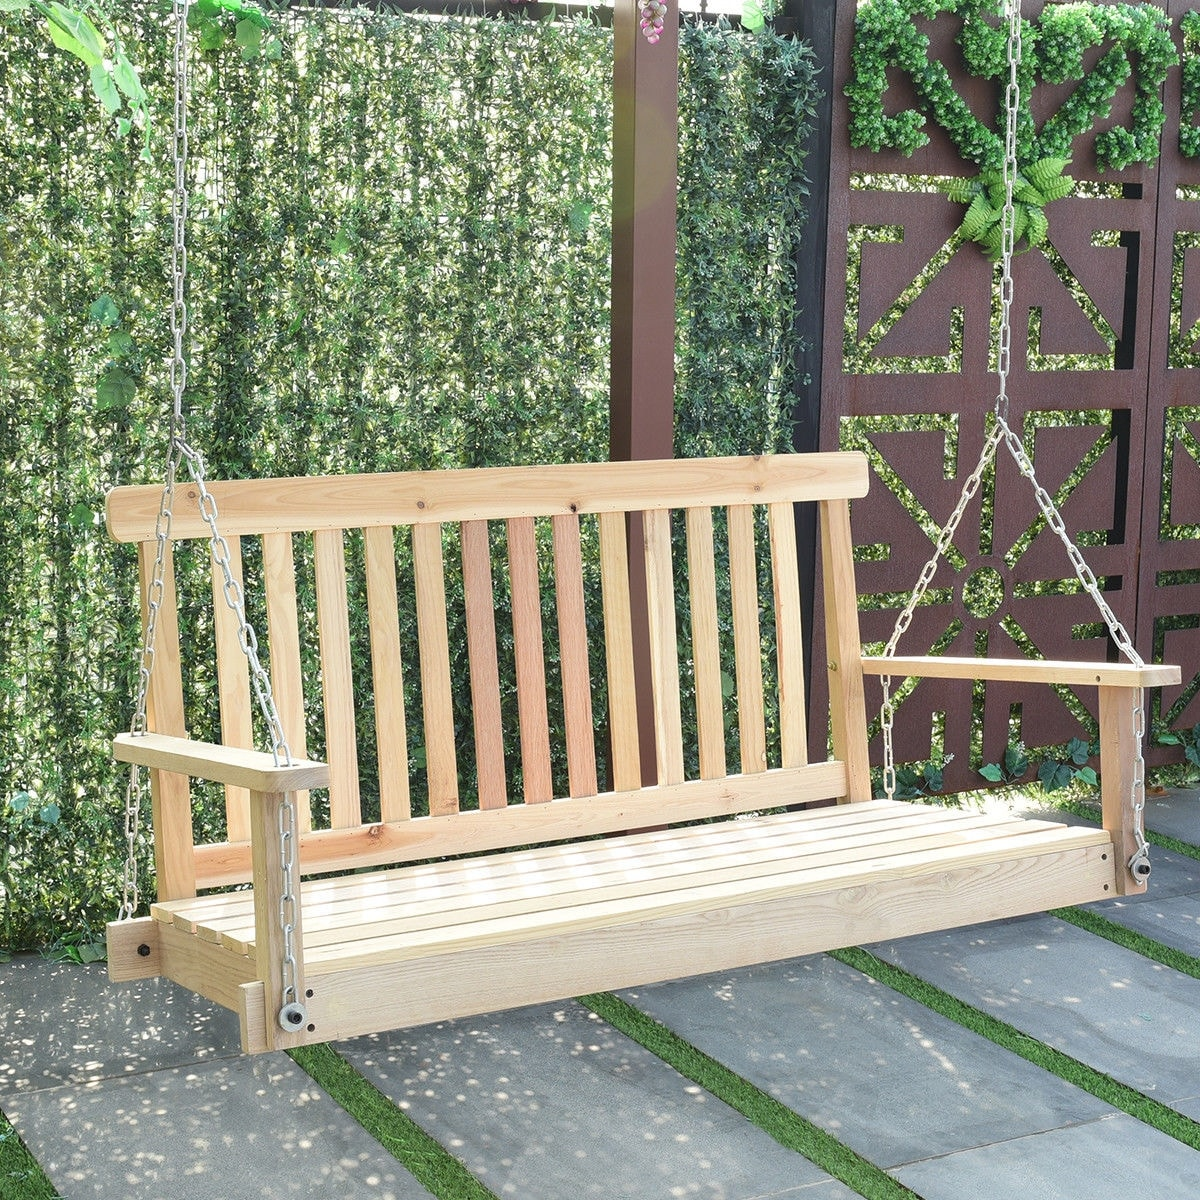 Beau Shop Costway 4 FT Porch Swing Natural Wood Garden Swing Bench Patio Hanging  Seat Chains   As Pic   Free Shipping Today   Overstock.com   19567368